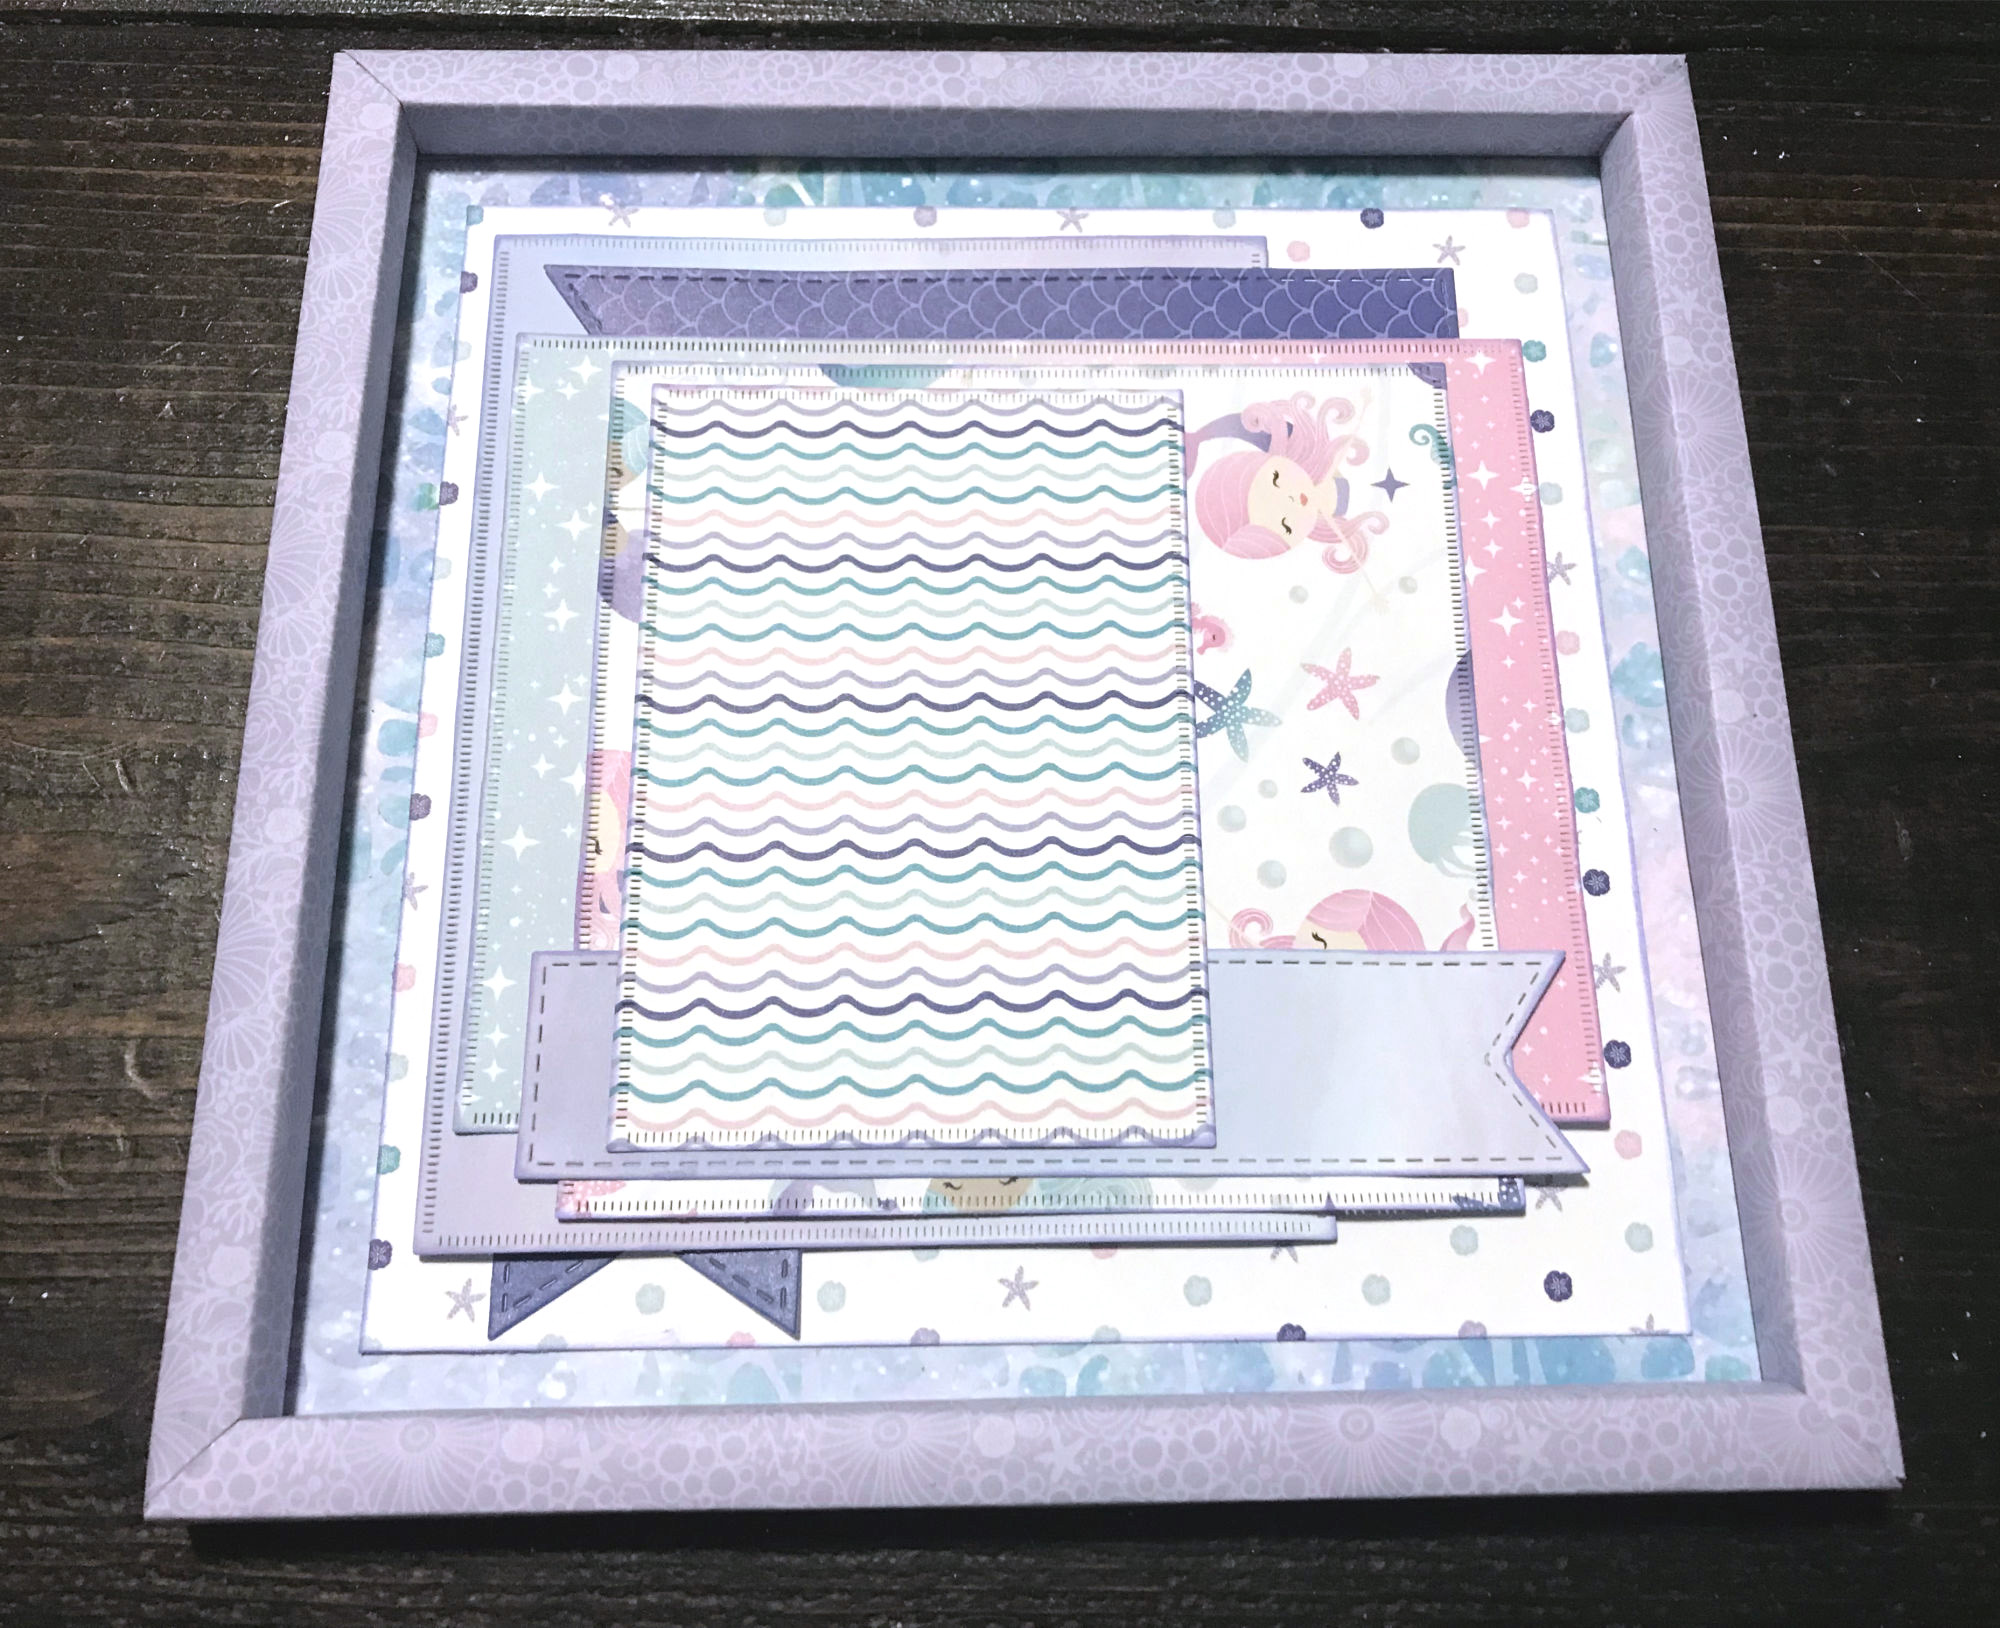 Home Decor Frame featuring the Mermaid Cove Collection by Creative Memories | Designed by Katelyn Grosart | Creative Scrapbooker Magazine